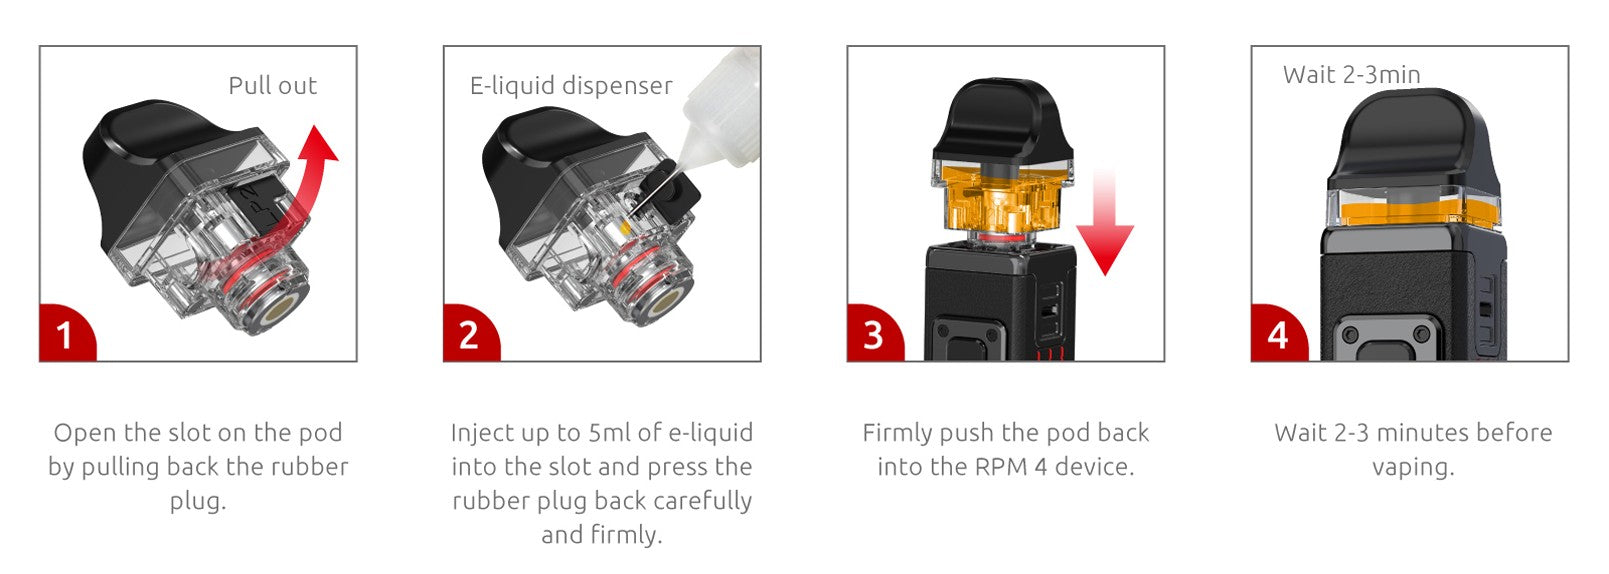 To fill the RPM4 pods with vape juice, simply remove the fill port and insert the nozzle into the top.